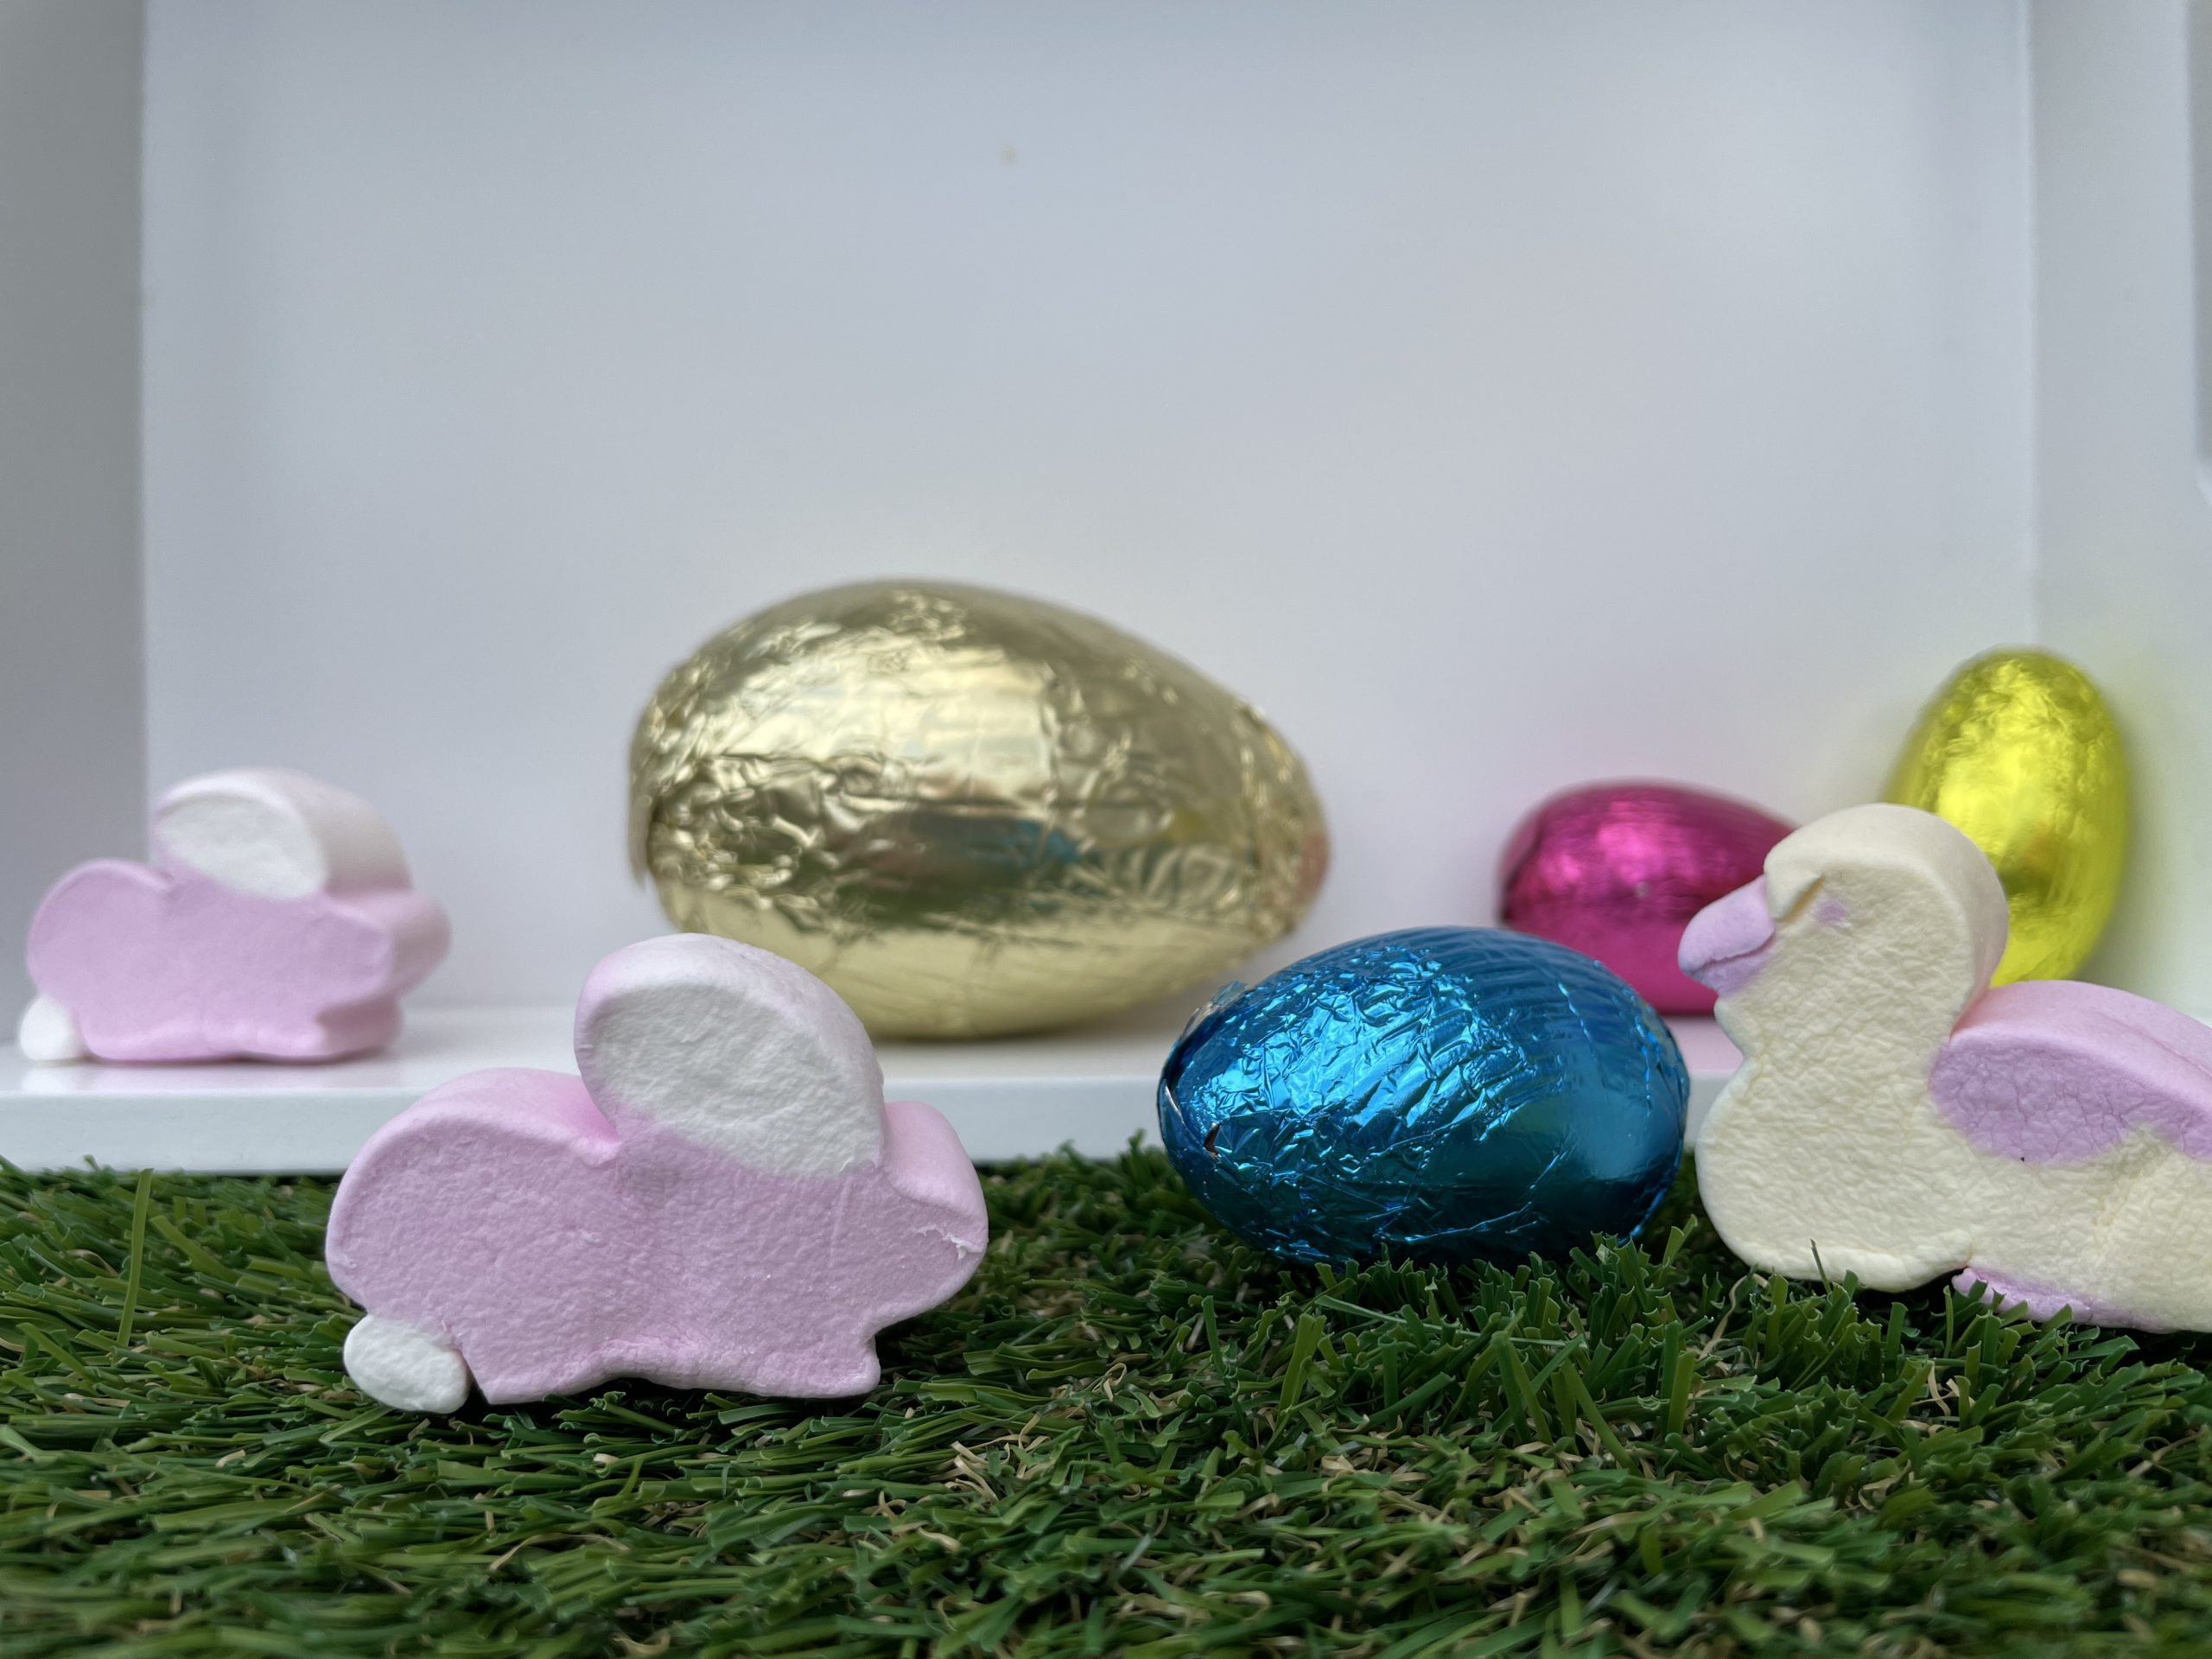 On a grass surface and white background are 2x pink and white marshmallow bunnies and 1x duck. There are 4 easter eggs, in gold, yellow, pink and blue